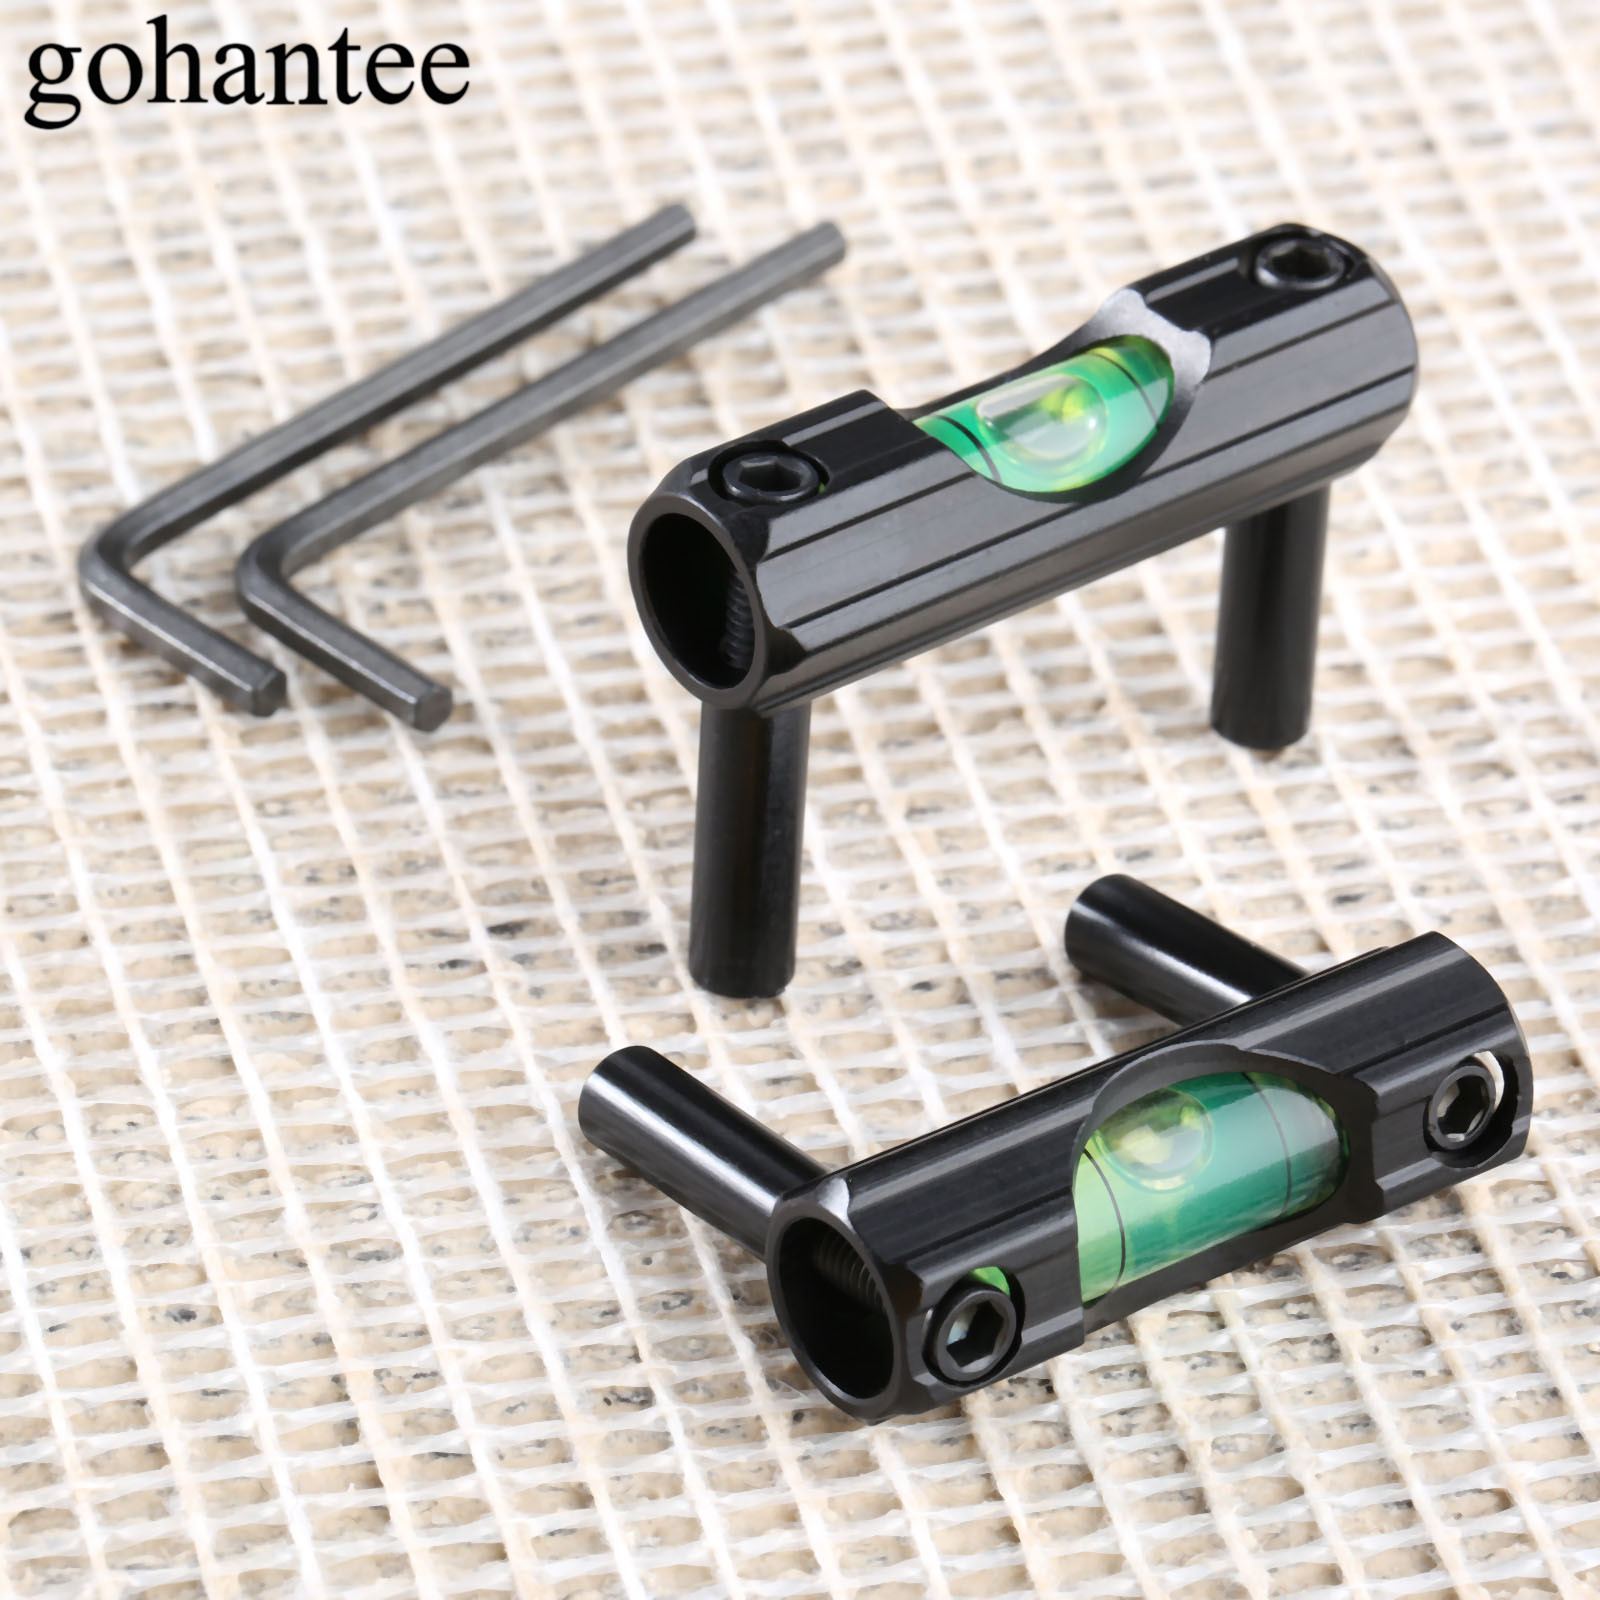 Gohantee Universal Flat Anti Cant Device ACD Rifle Scope Bubble Level Mount Hunting Riflescope Accessories 25.4mm 1